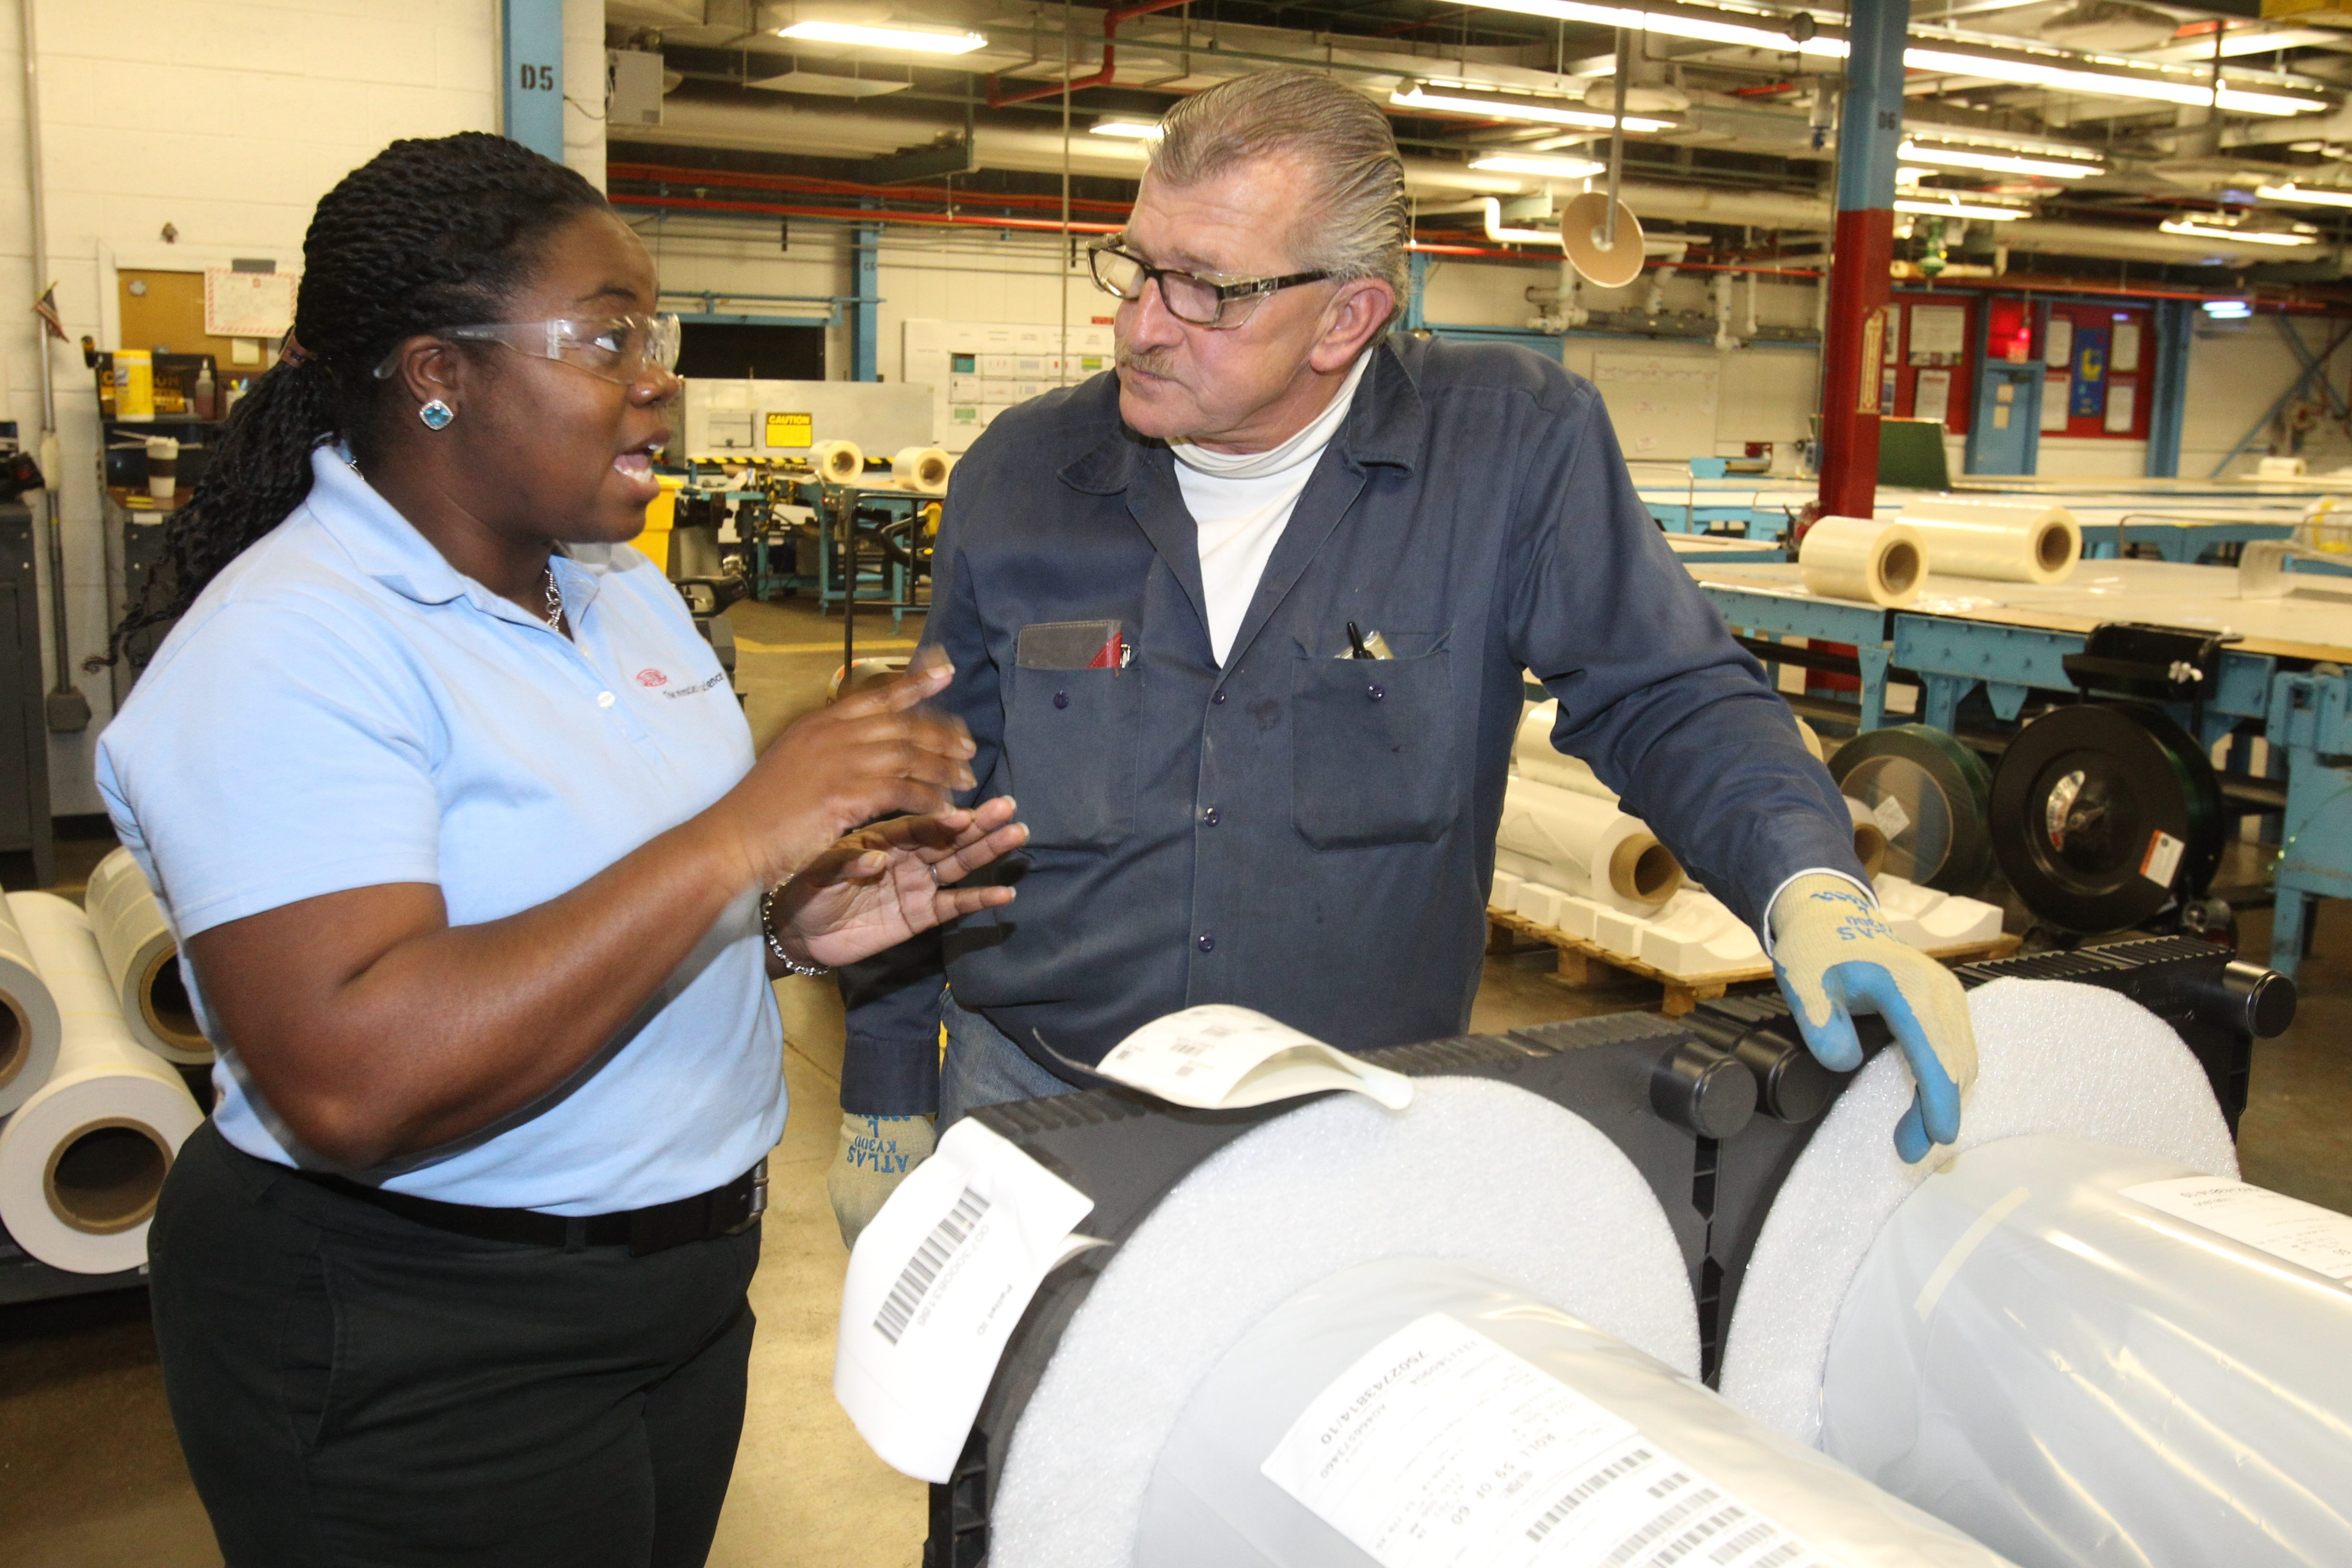 Myoshi Aubain, production manager for the Tedlar unit, talks with finishing section operator Tom Meaney at the DuPont Yerkes Plant in the Town of Tonawanda. In December, Buffalo Niagara factories reported better productivity amid a slump in hiring.